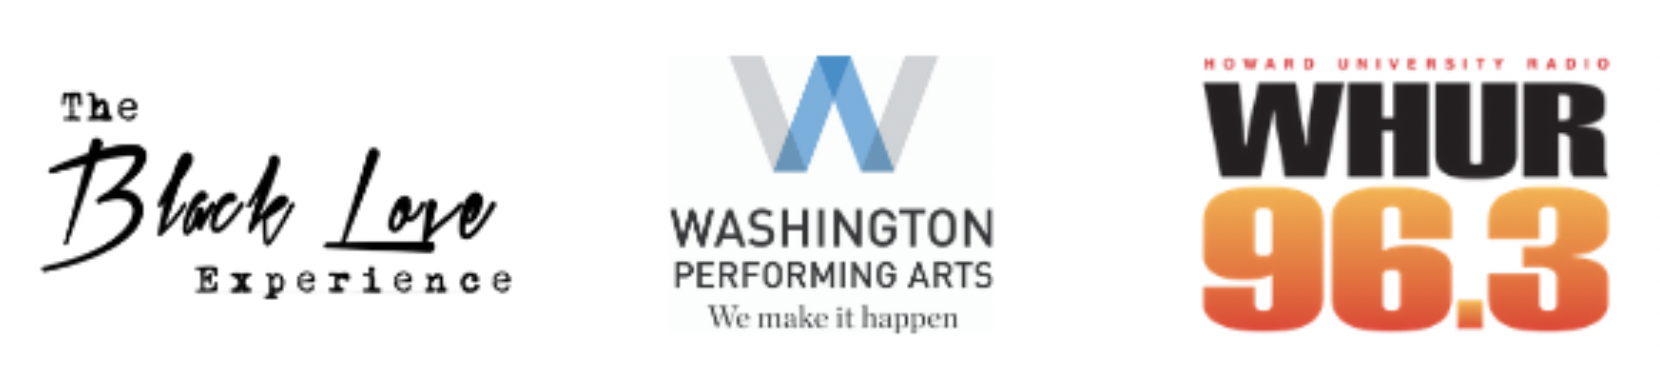 Black Love Experience Partners with Washington Performing Arts and WHUR to Celebrate Black Excellence